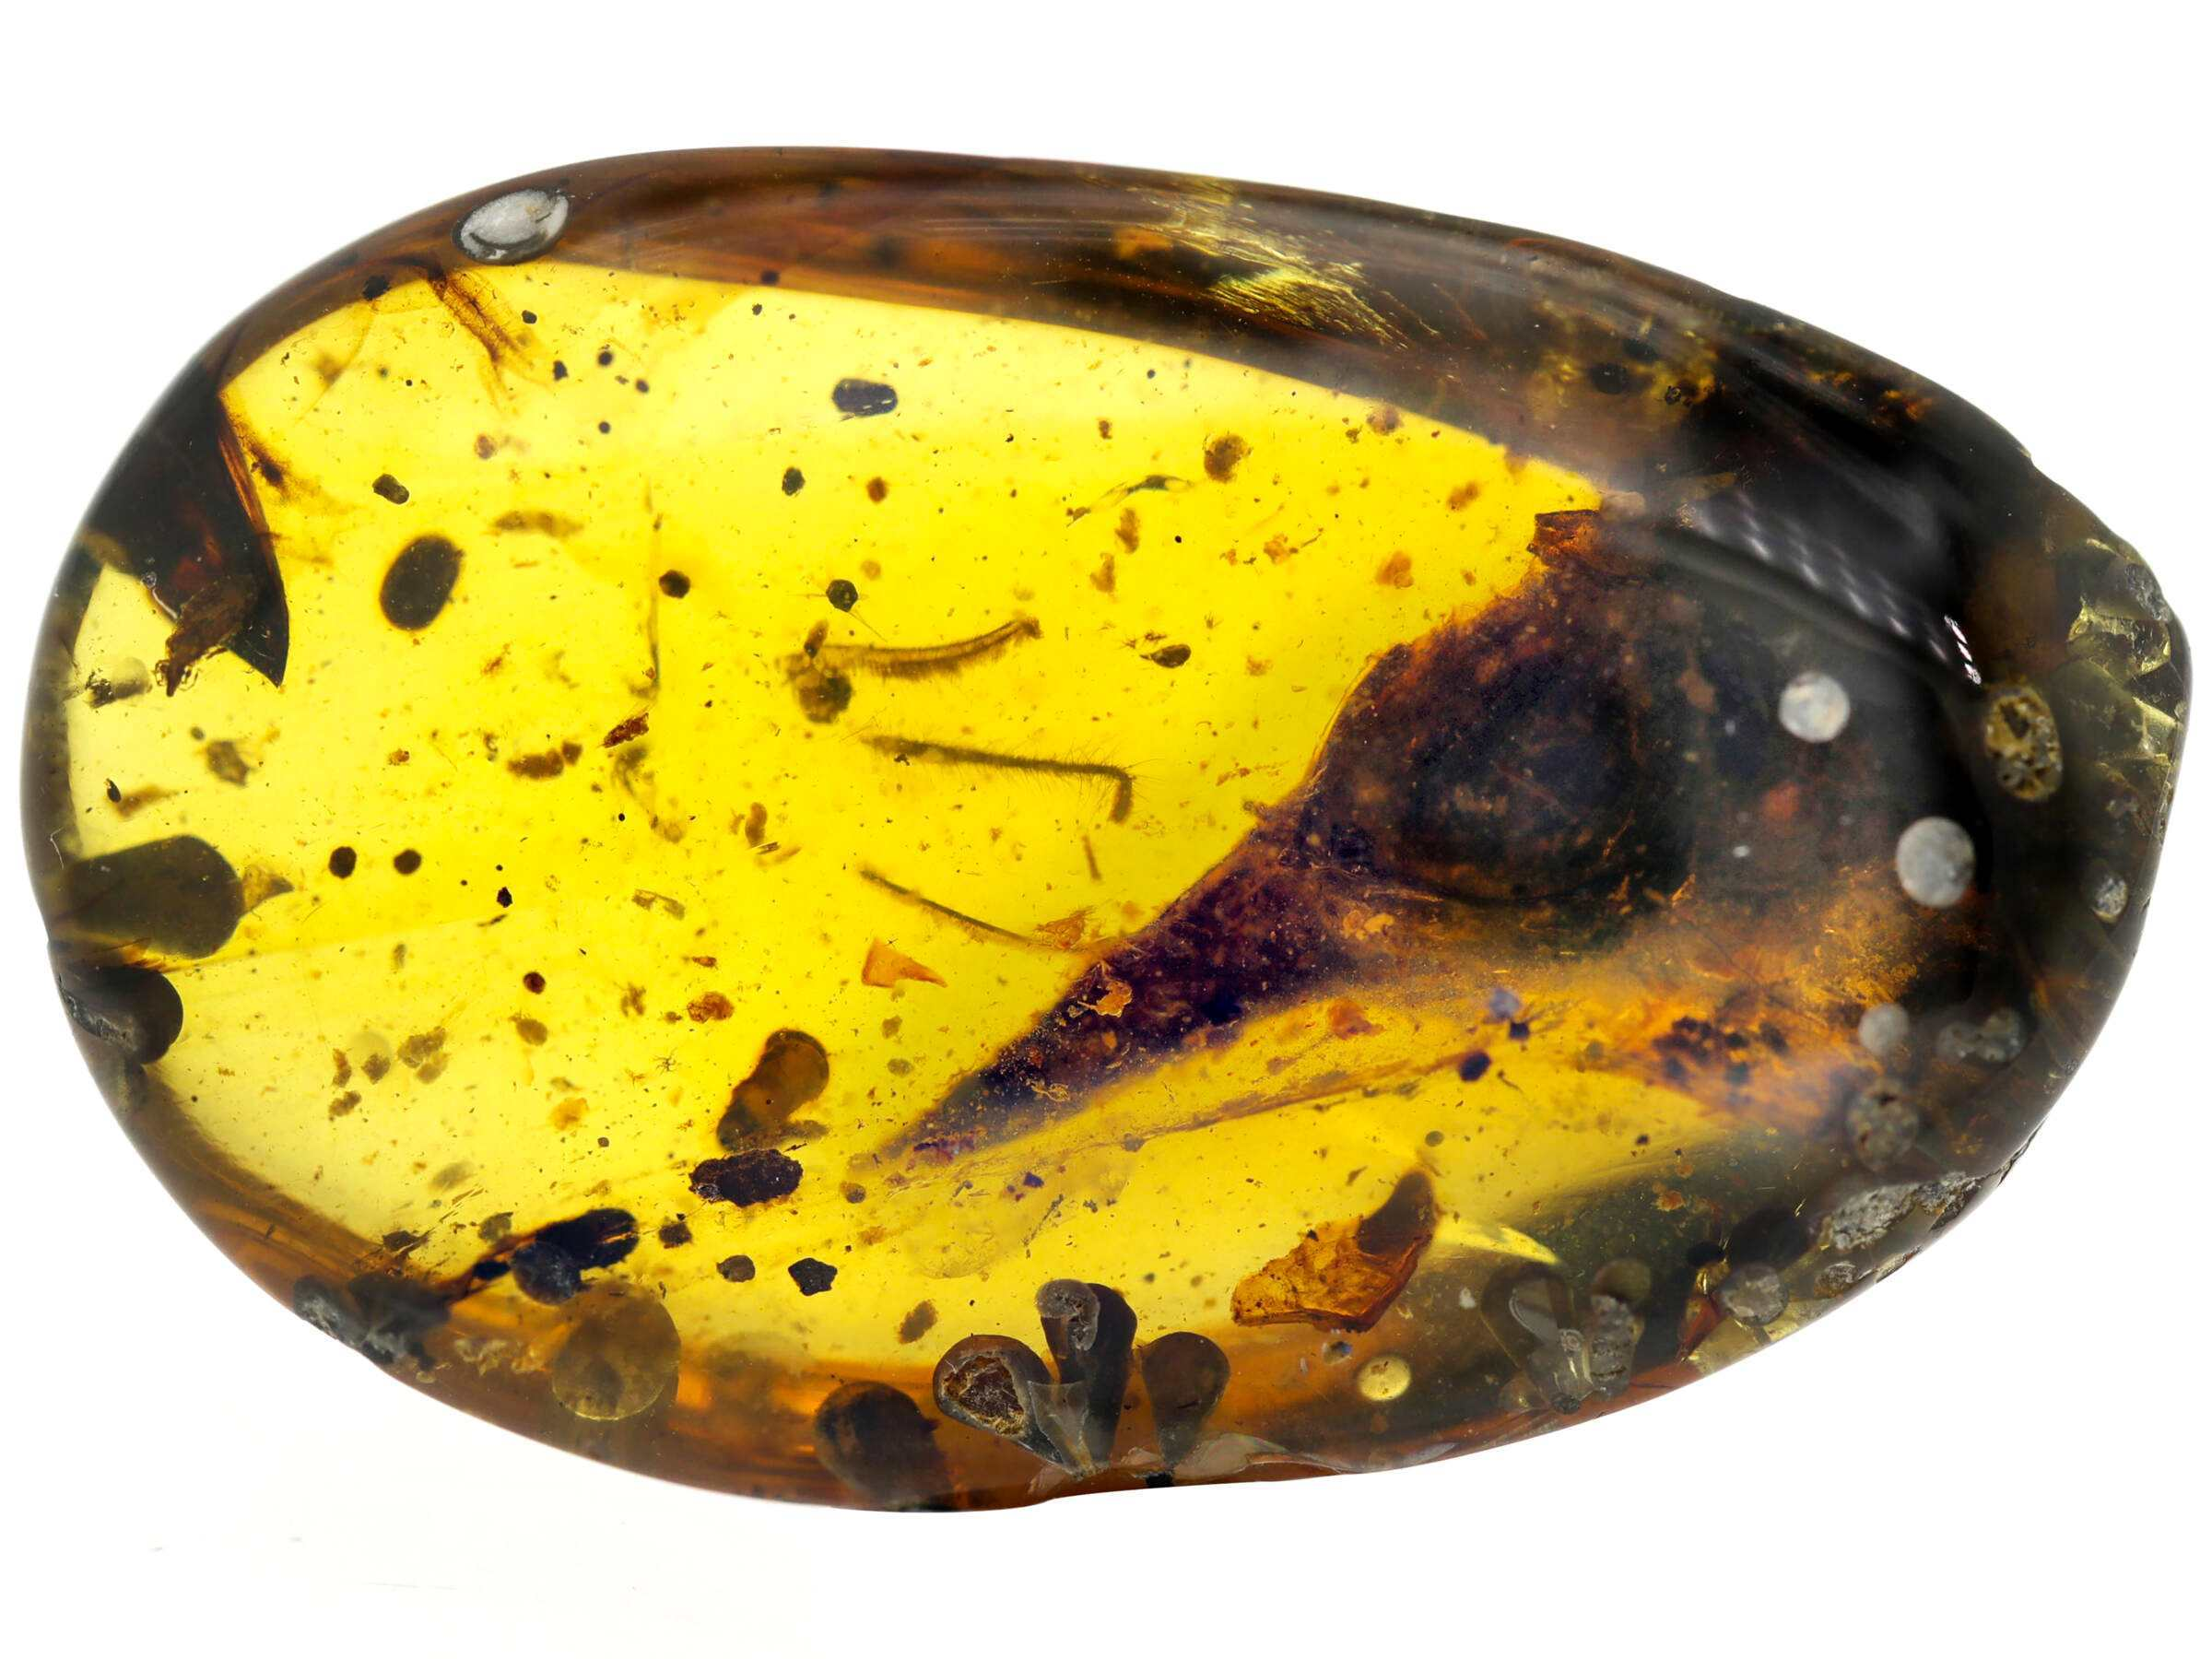 Burmese amber with Oculudentavis skull nearly perfectly preserved inside.